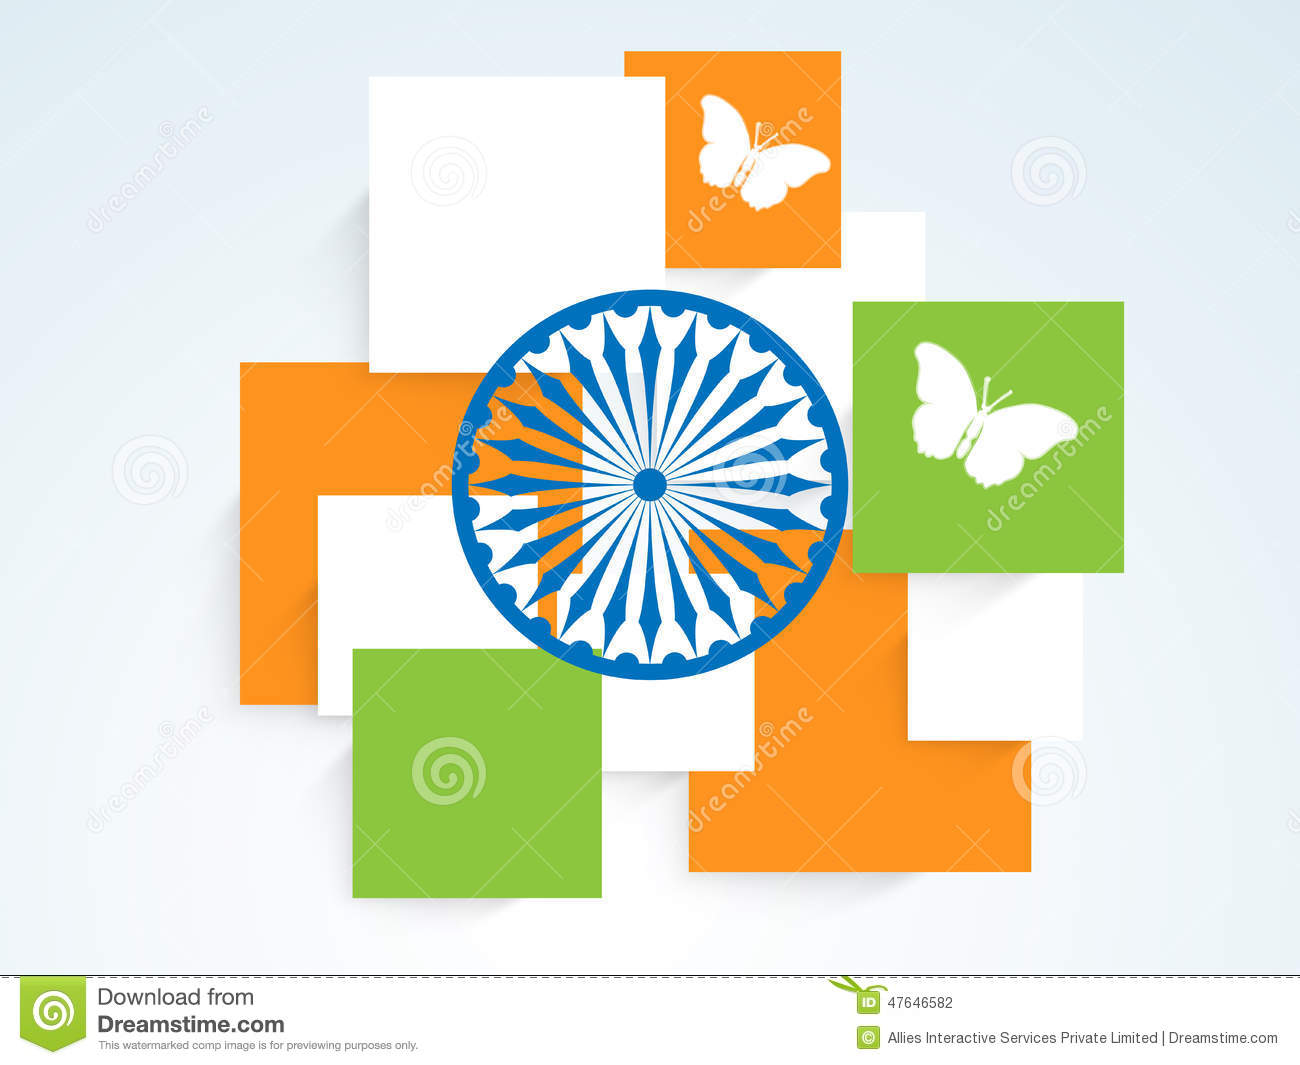 Indian Flag Butterflies: Square In National Flag Color With Ashoka Wheel And